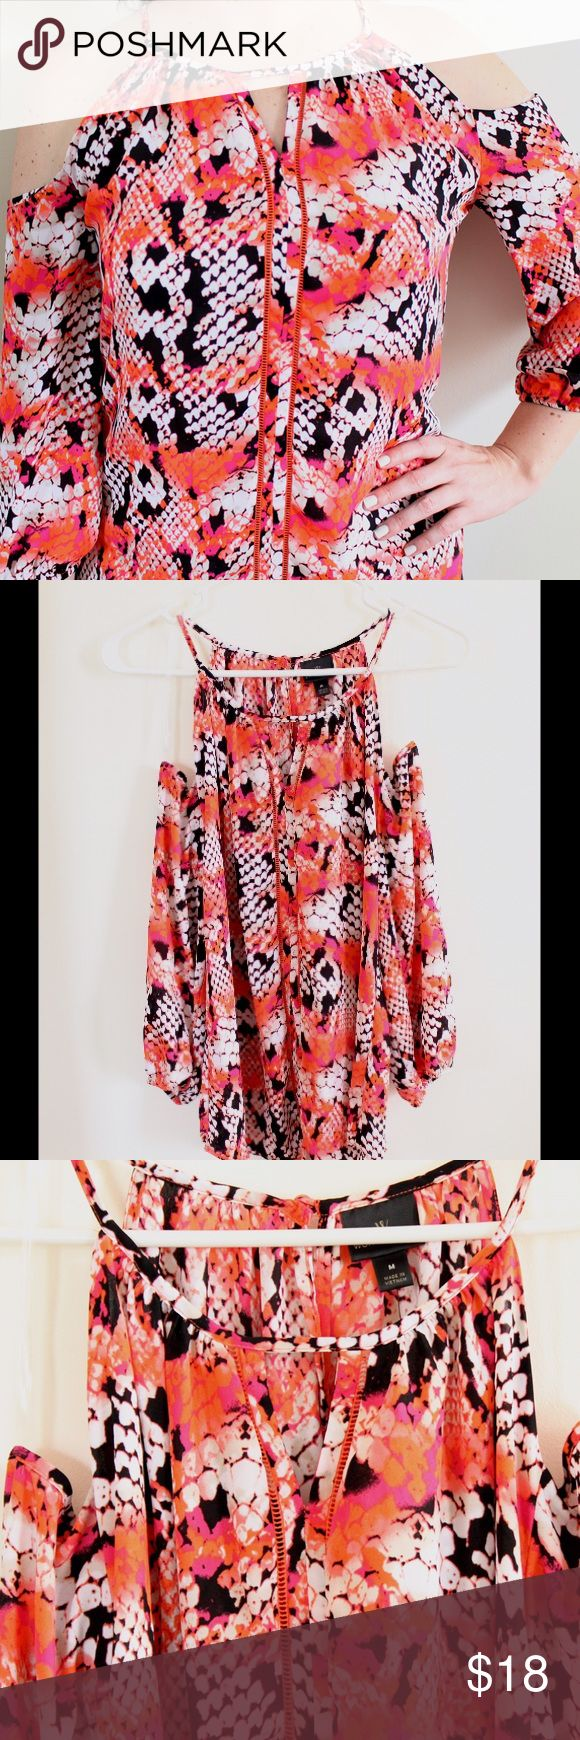 """NWT Cold Shoulder Snake Skin Blouse SZ M Brand new Worthington cold shoulder blouse. So much fun detail on this top! Bright pink and orange snake skin print. Flowy and 3/4 sleeves with elastic band at bottom. SZ M, approx 26"""" long in the front and 27"""" long in the back. No trades, offers welcome! Worthington Tops Blouses"""